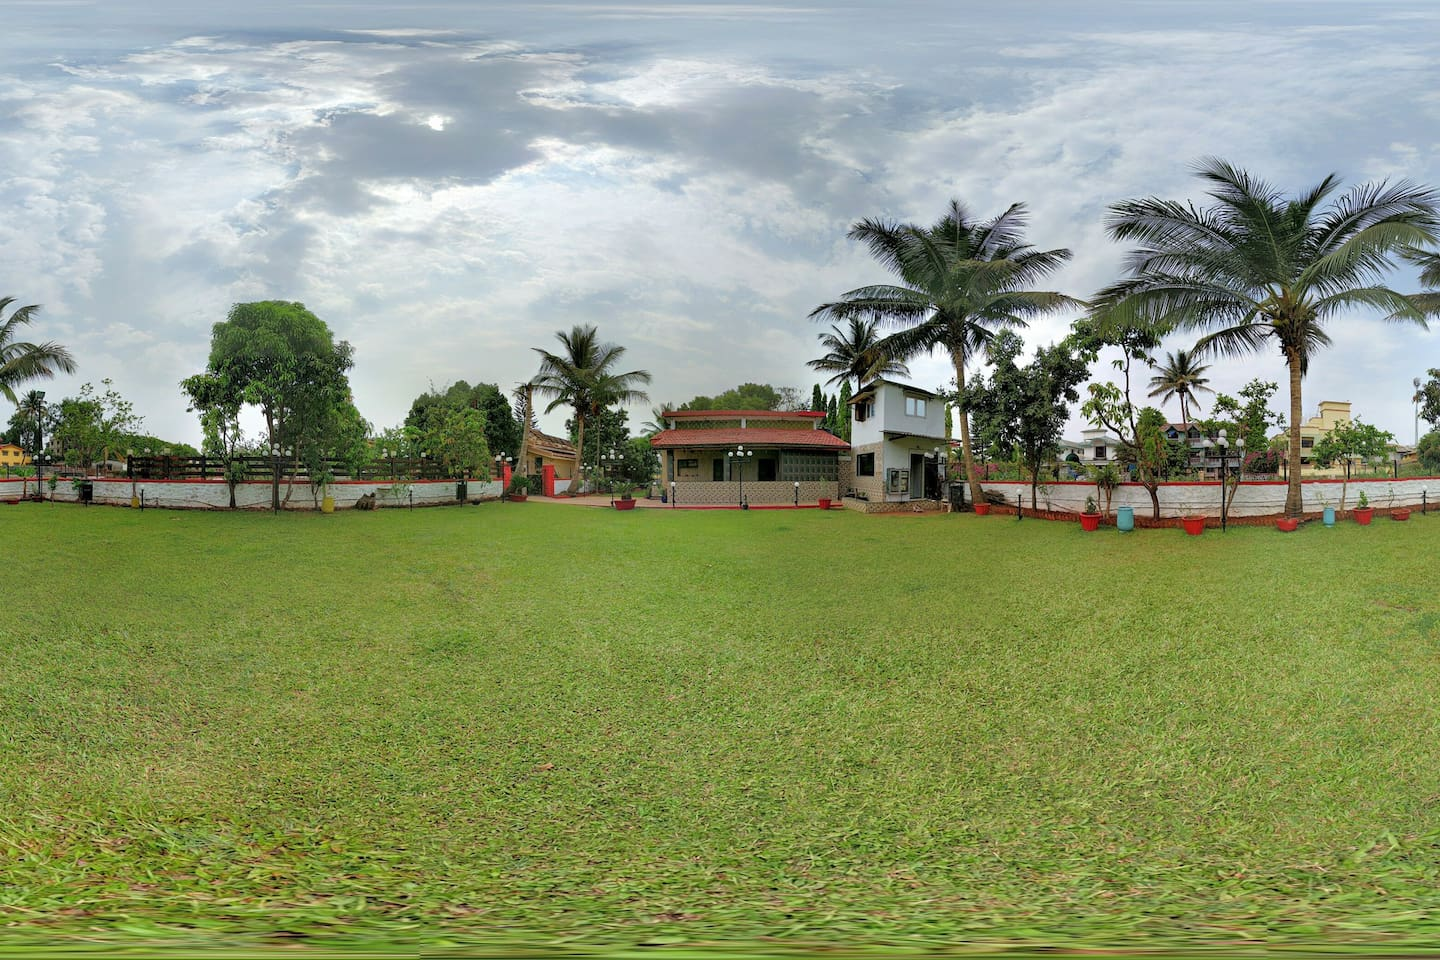 Panoramic view of the villa with the lawn.